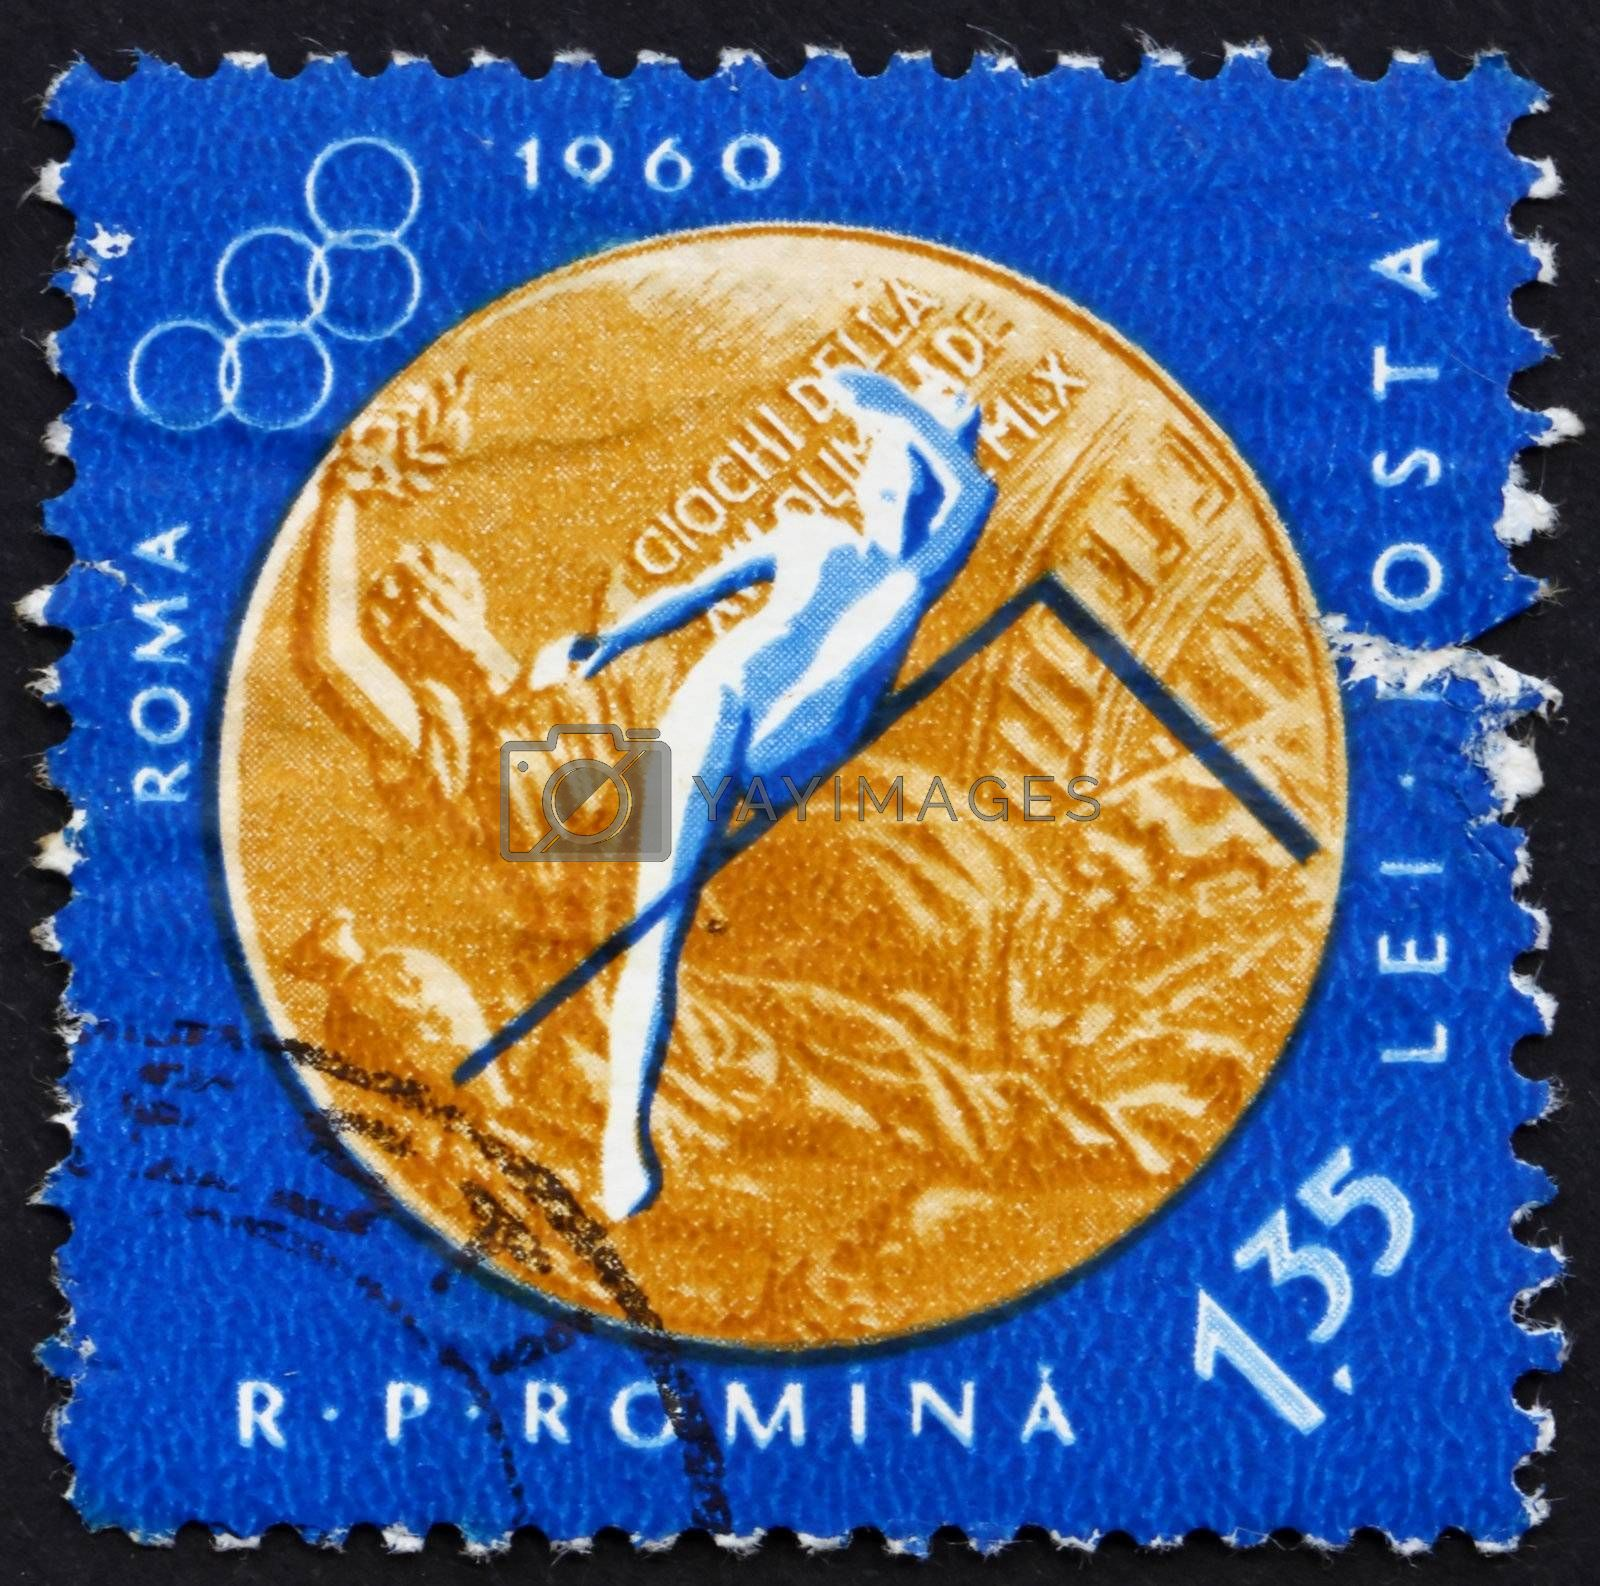 ROMANIA - CIRCA 1961: a stamp printed in the Romania shows Woman�s High Jump, Summer Olympic sports, Roma 60, circa 1961